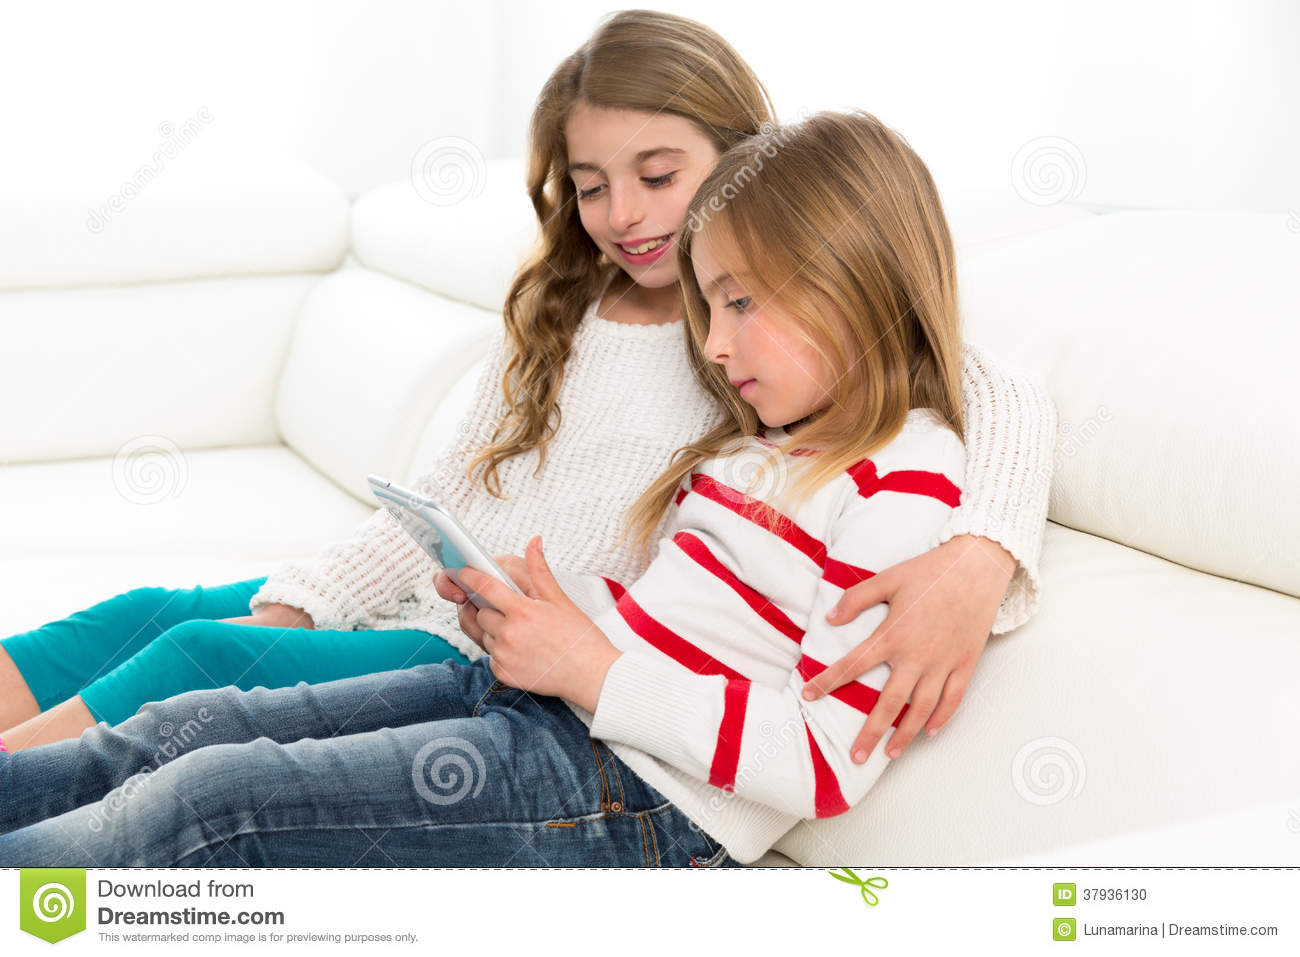 Sofa Credit Children Sister Friends Kid Girls Playing Together With